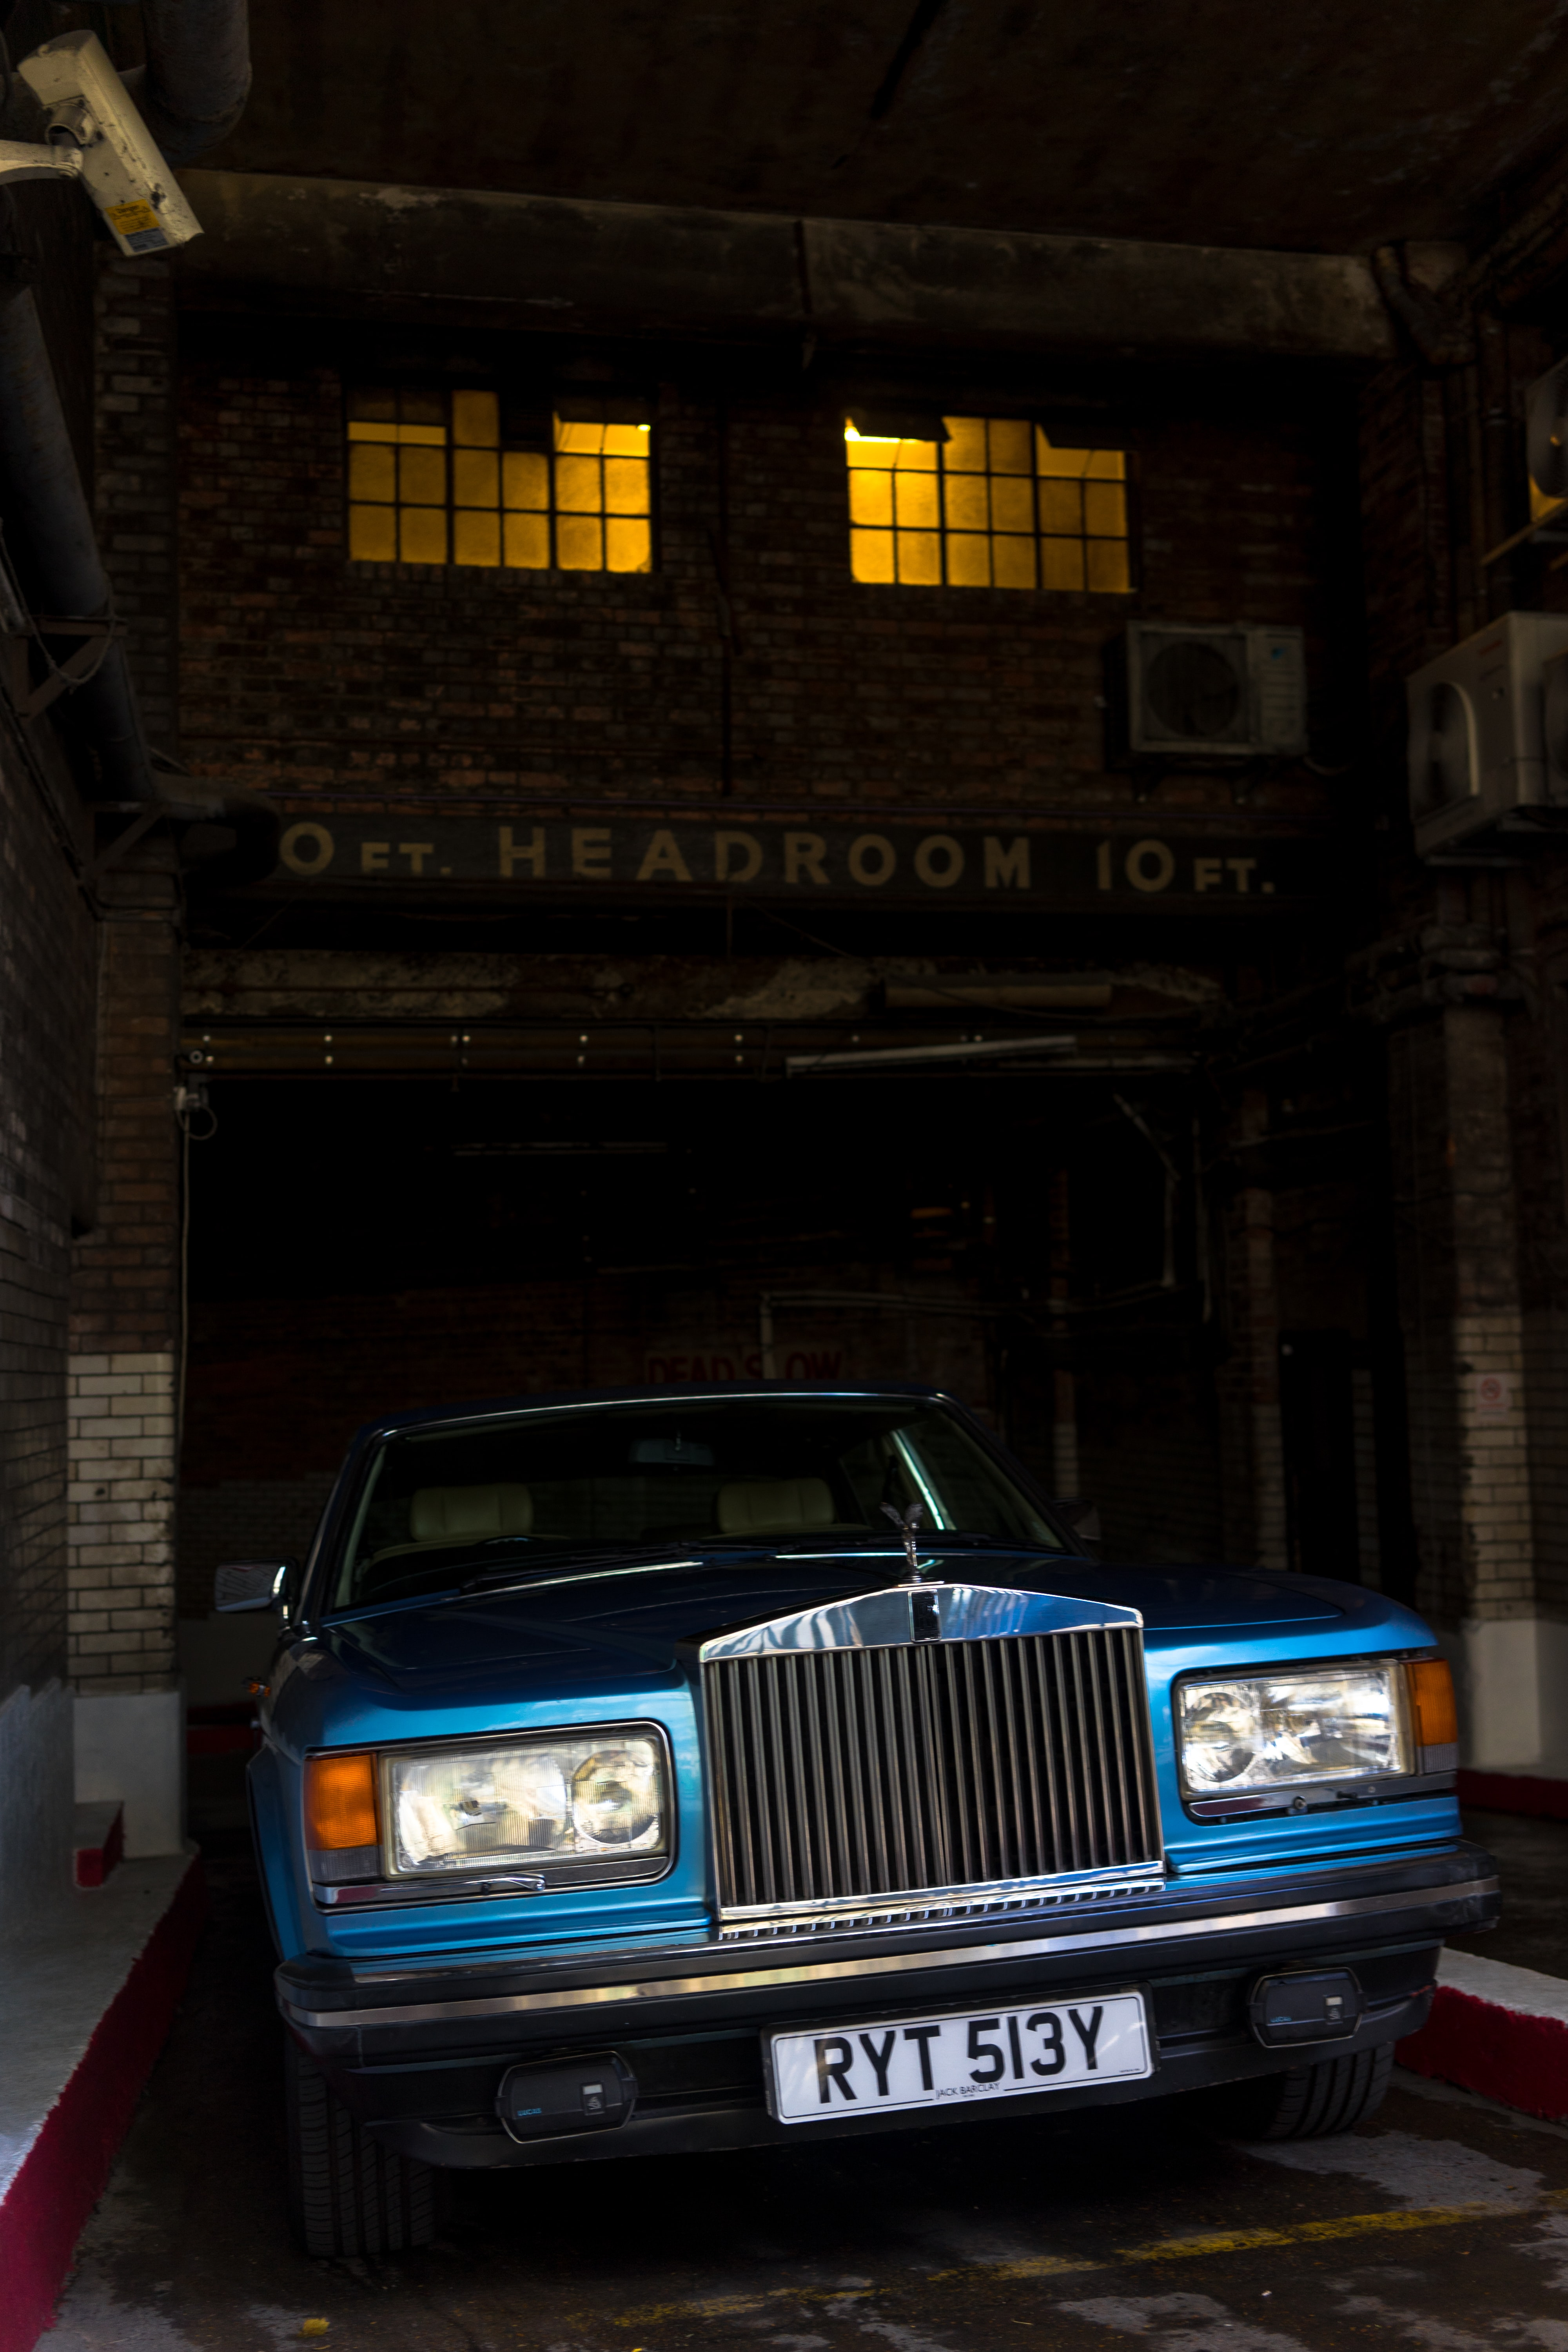 classic blue car parked near Headroom building